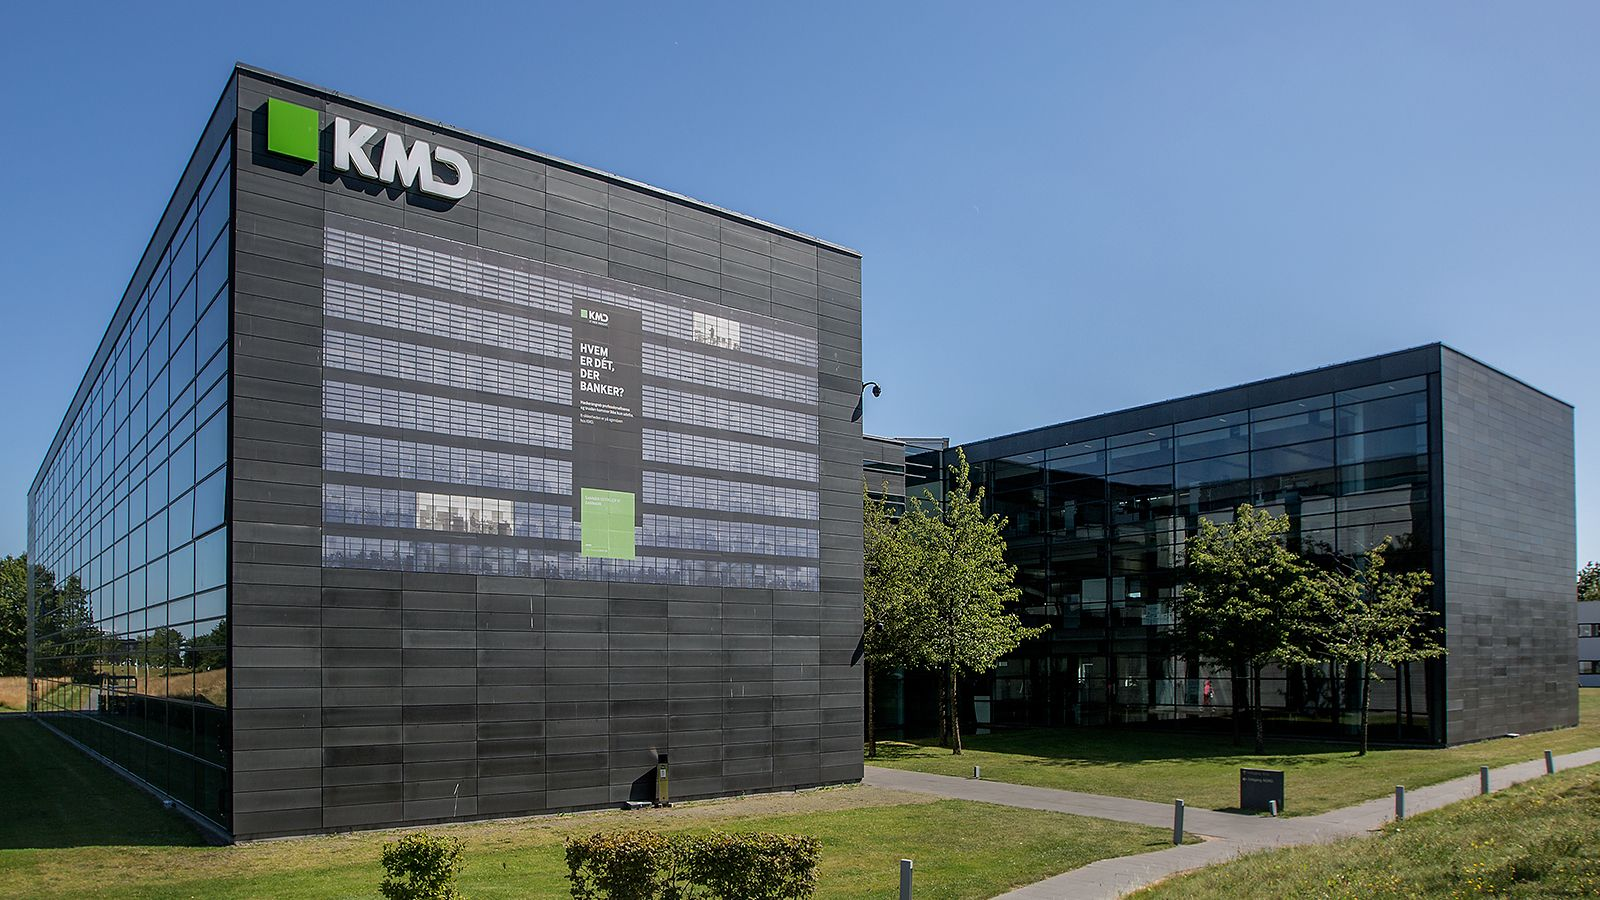 KMD headquarters in Ballerup, Denmark